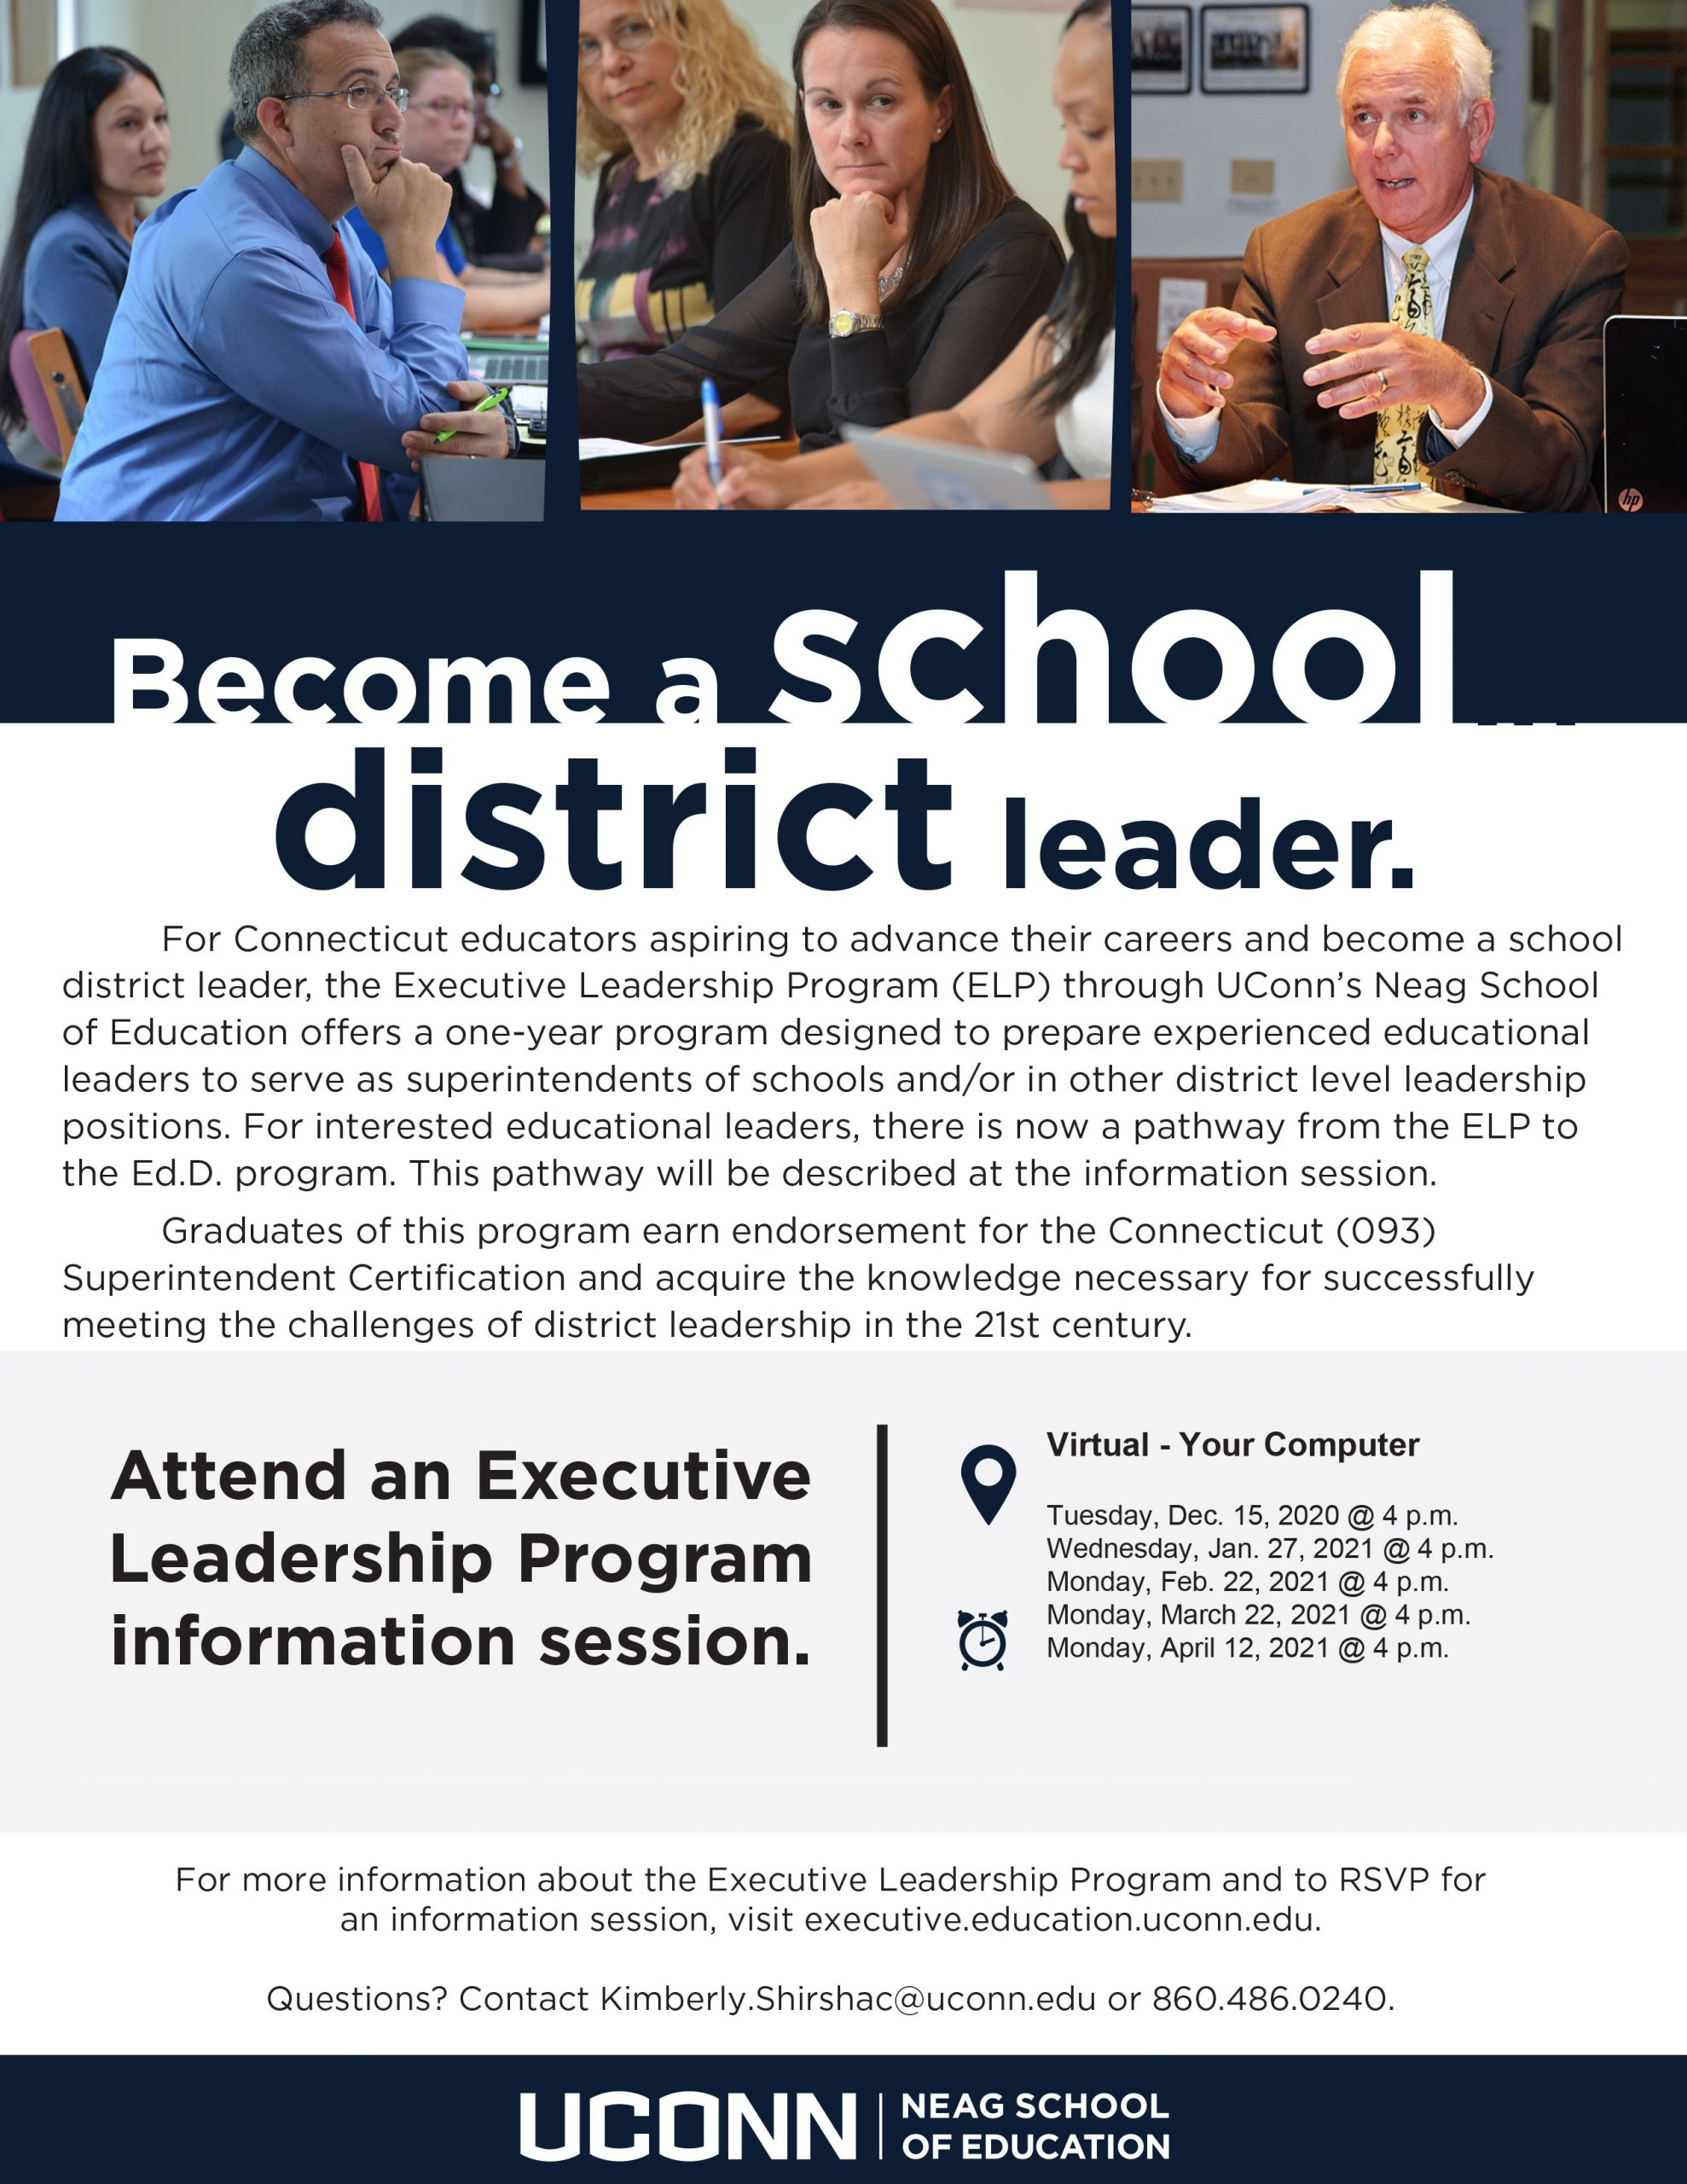 Become a school district leader flyer